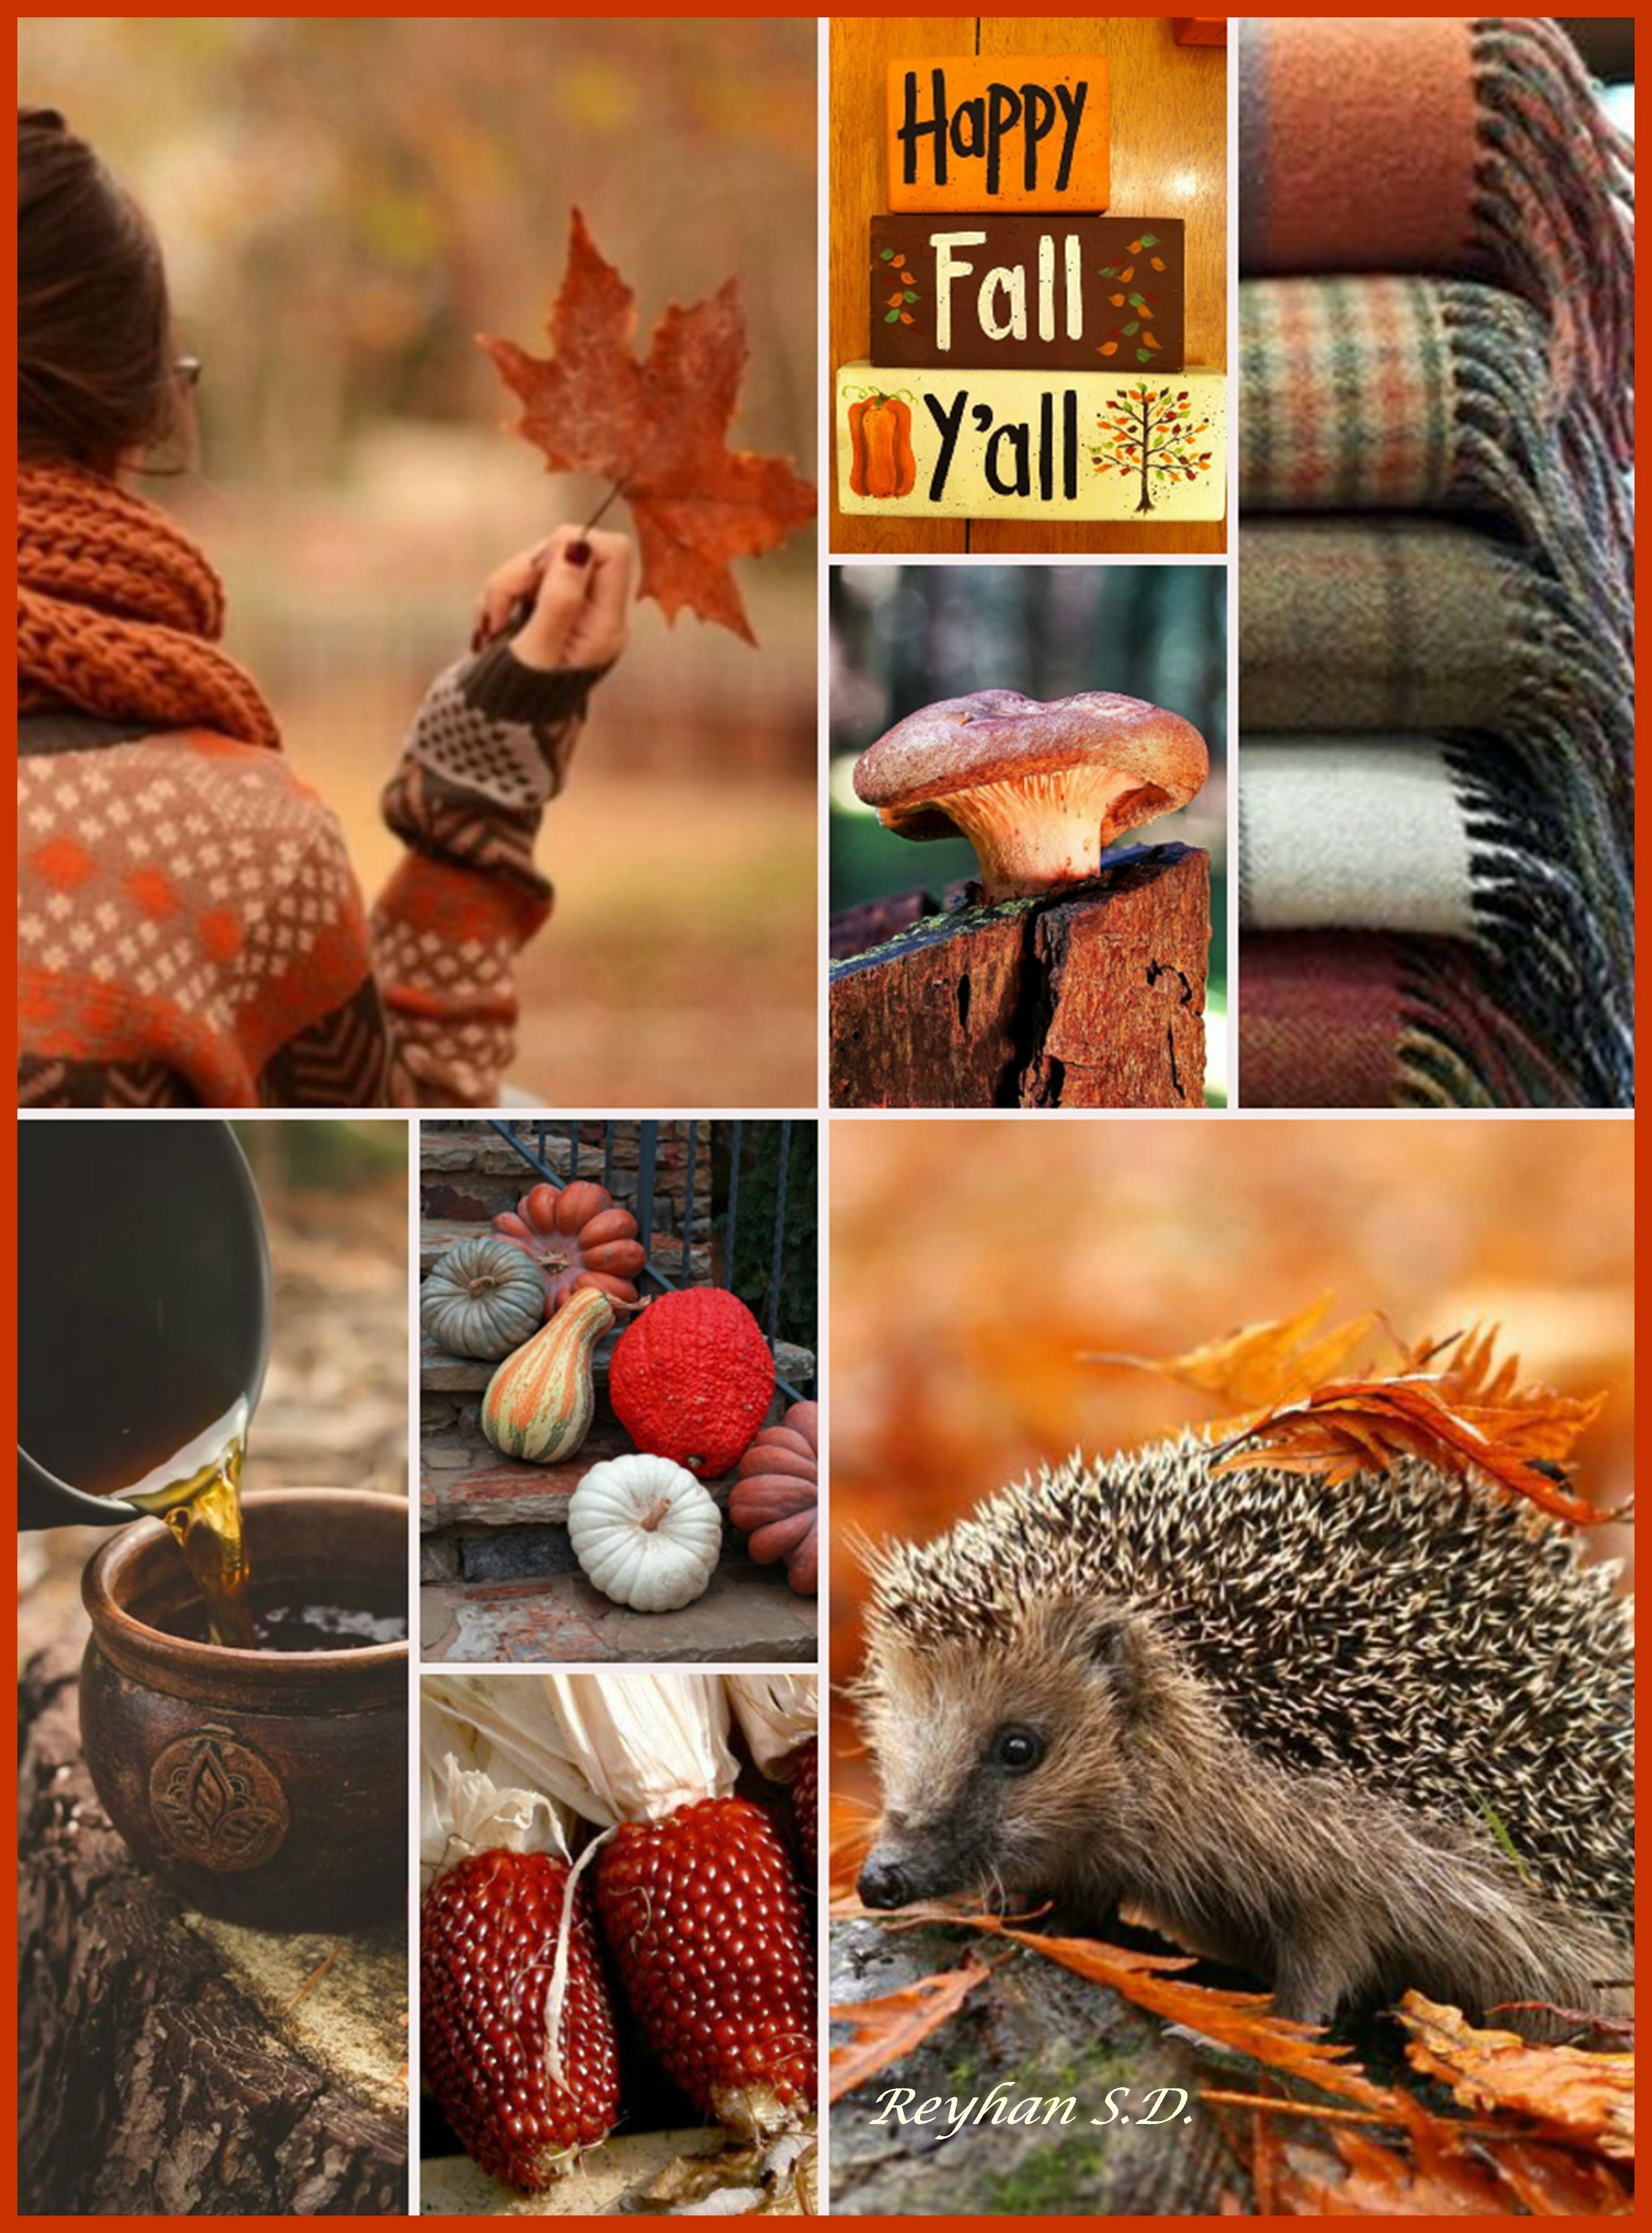 '' Happy Fall '' by Reyhan S.D. Mood board collage inspiration photo